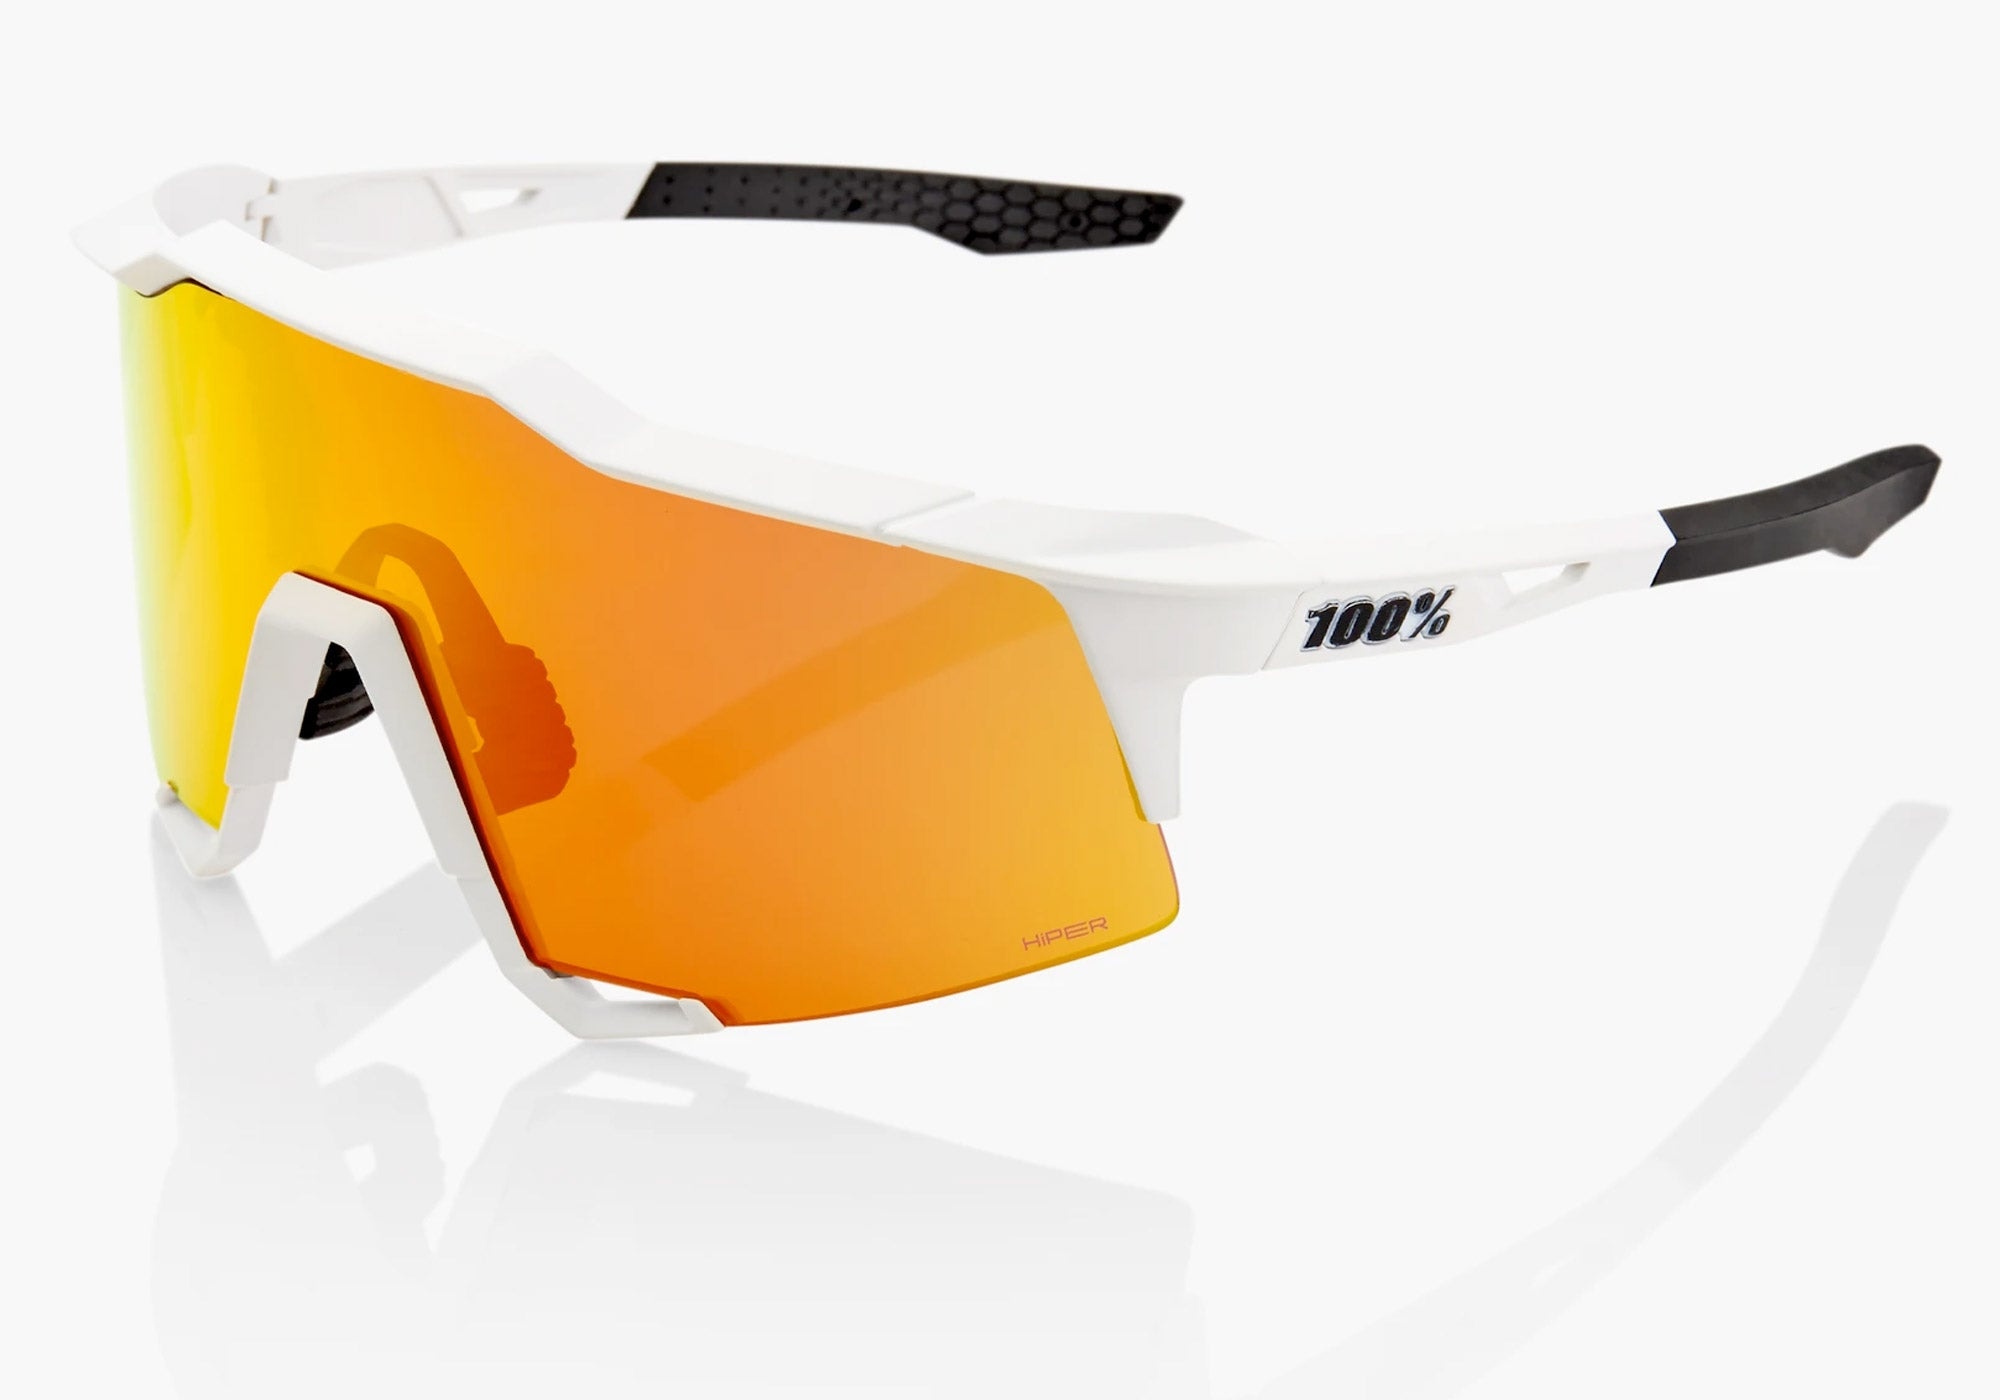 100% Eyewear Speedcraft Off White, with Hiper Red Mirror Lens + Clear Lens, Cycling Sunglasses, buy online at Woolys Wheels Sydney